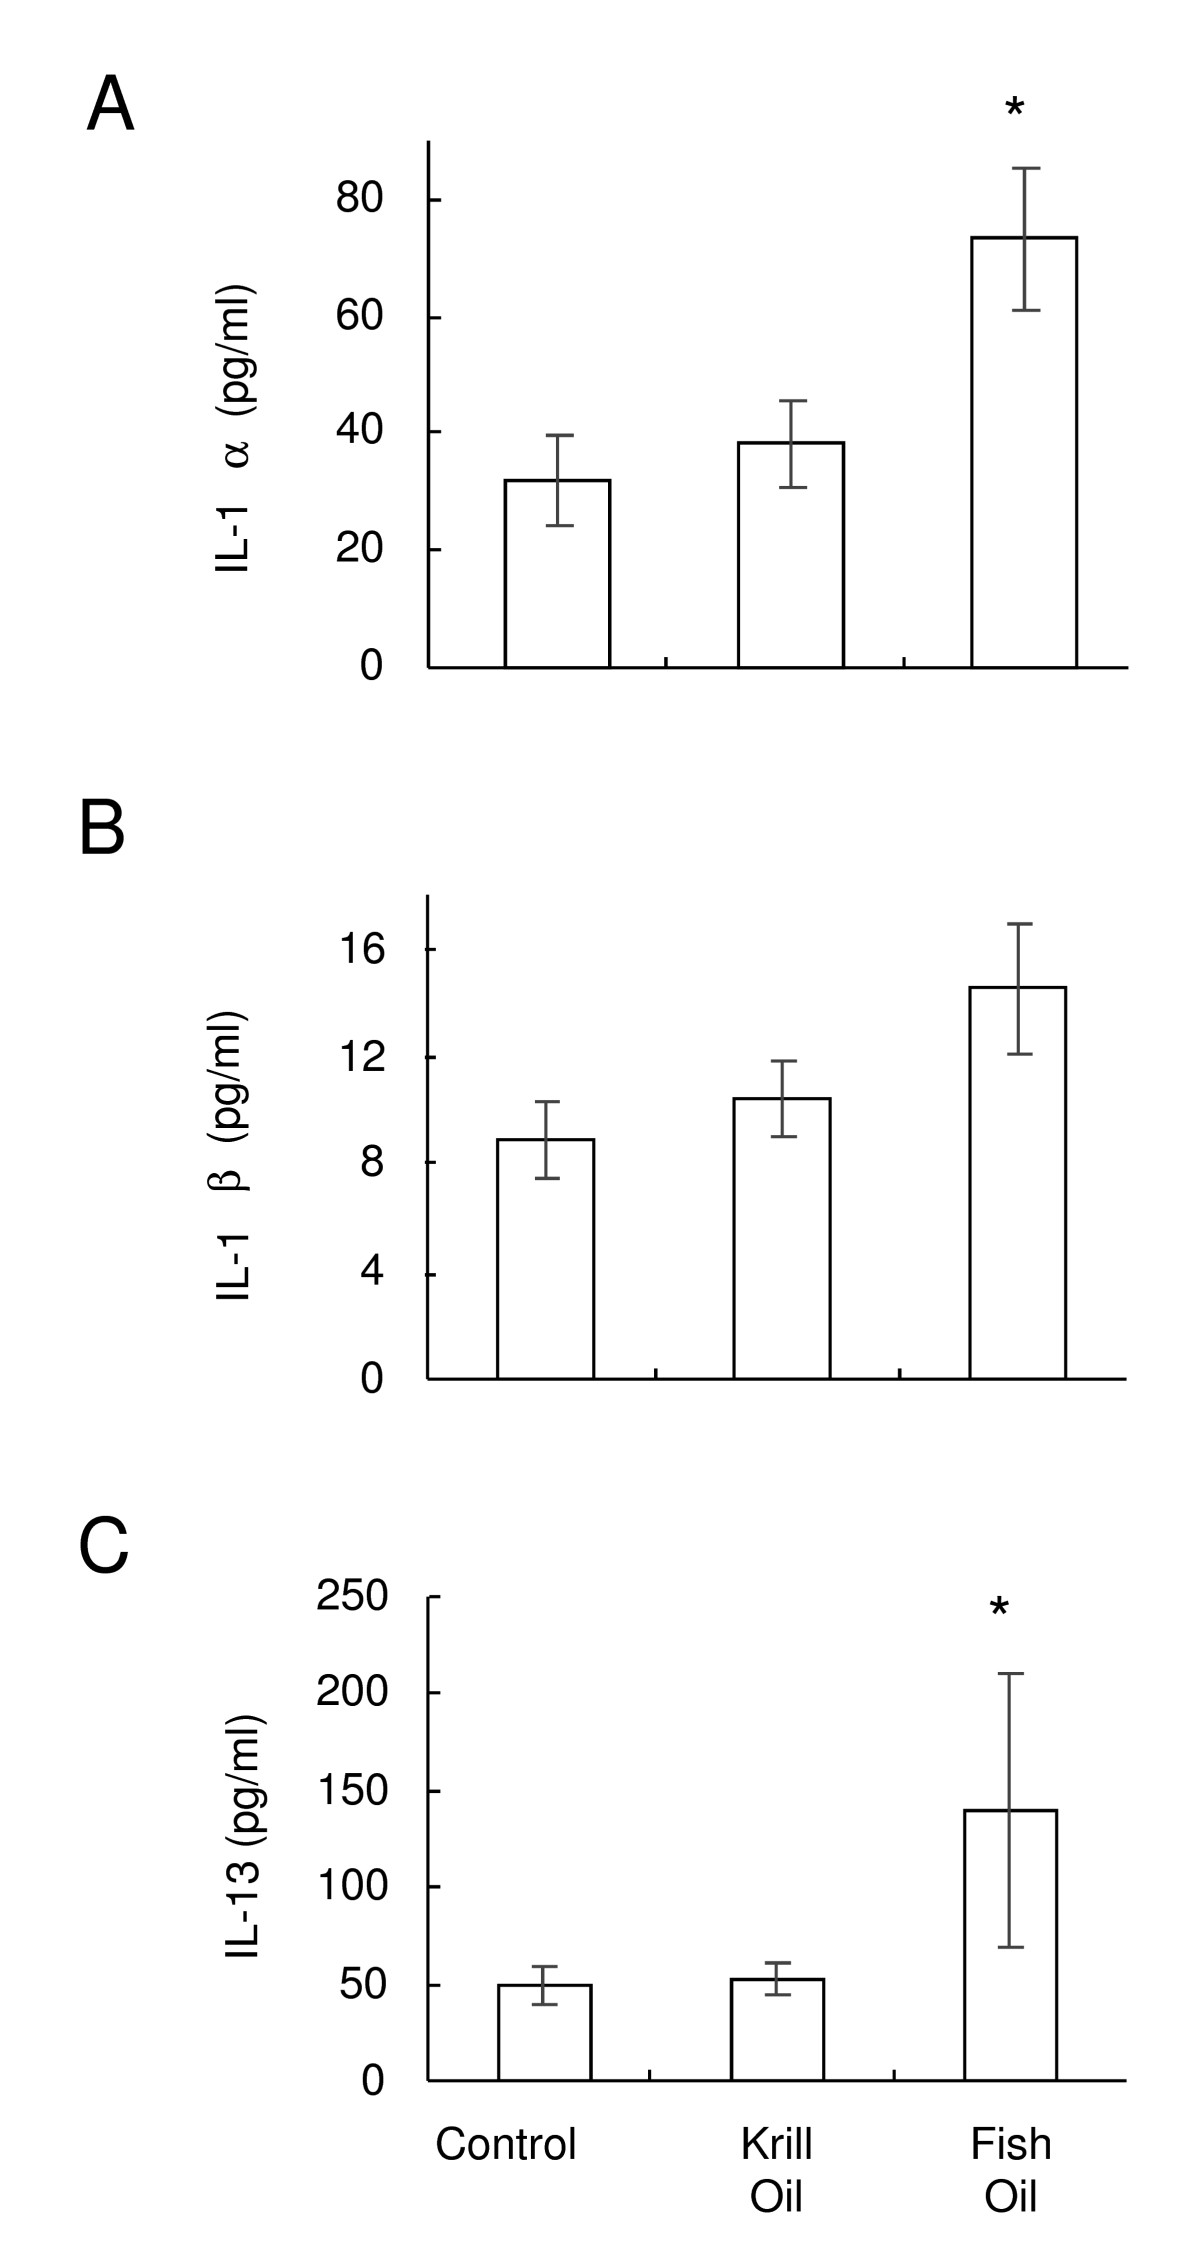 http://static-content.springer.com/image/art%3A10.1186%2F1471-2474-11-136/MediaObjects/12891_2010_Article_882_Fig4_HTML.jpg